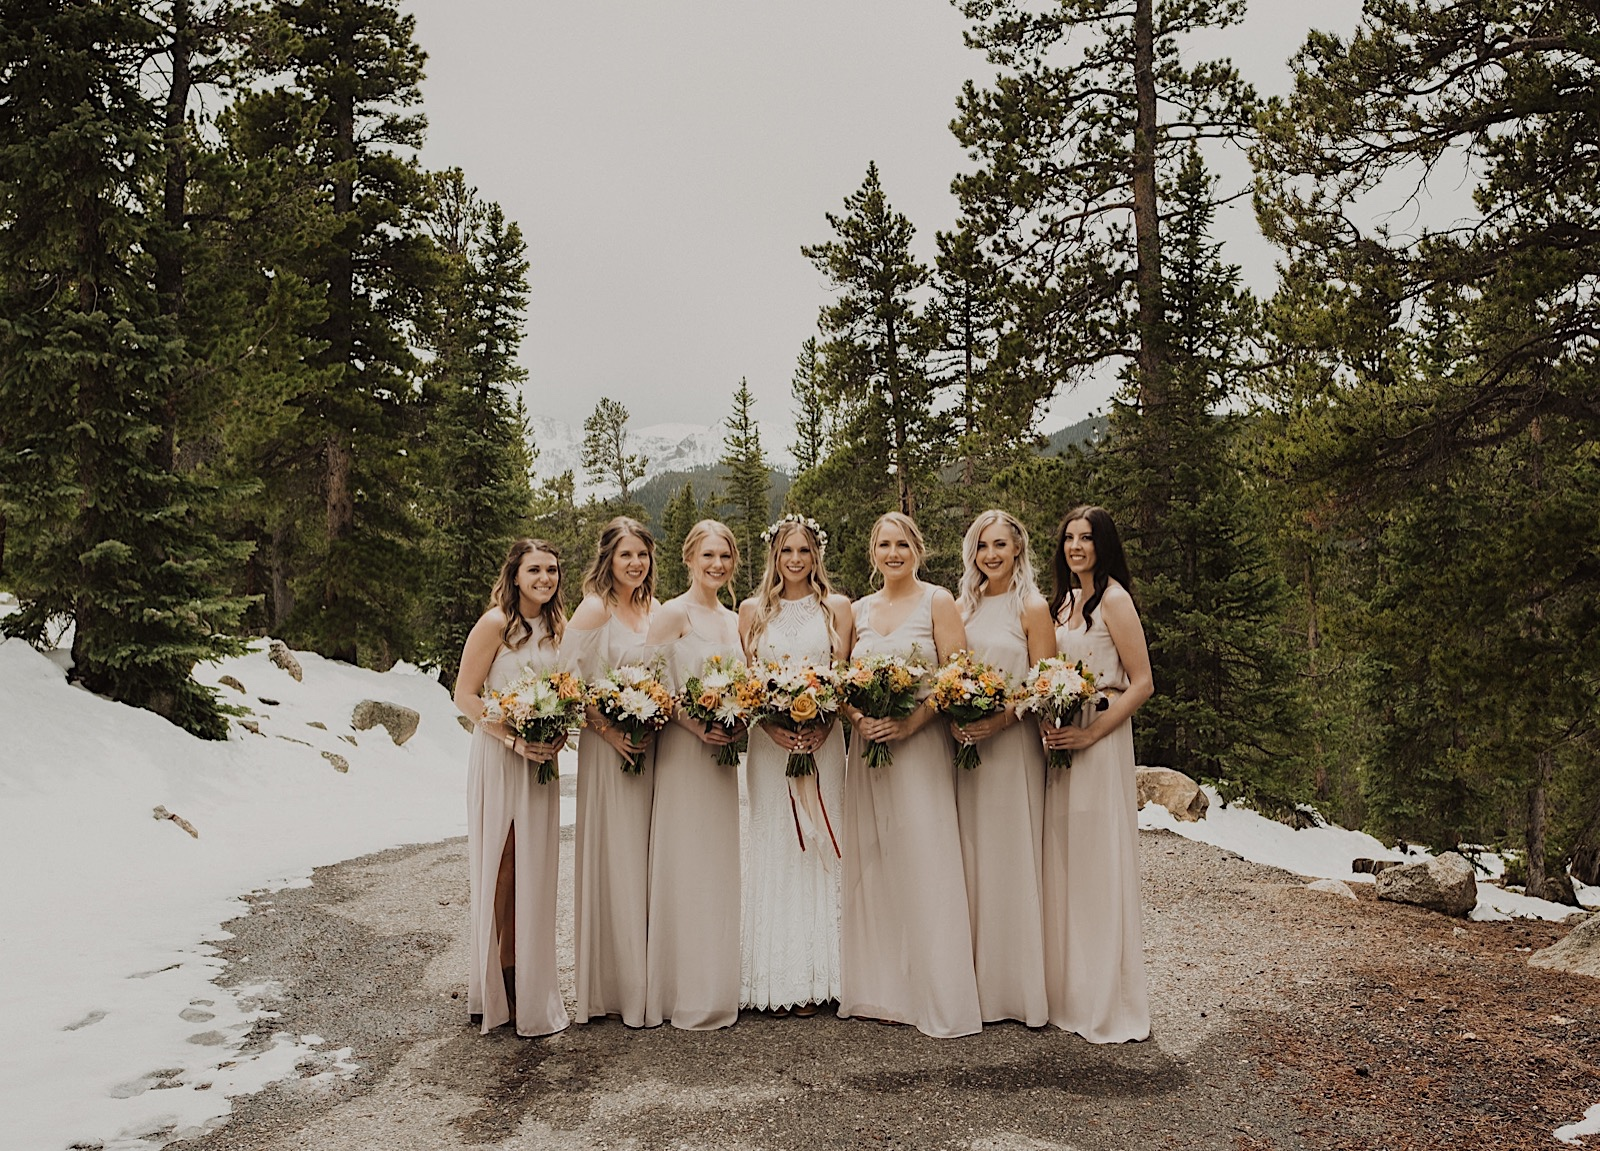 Blackstone Rivers Ranch Wedding, Colorado Wedding Photographer, Colorado Elopement Photographer, Colorado Mountain Wedding, Colorado Wedding Ideas, Colorado Wedding Inspiration, Destination Wedding in Colorado, Places to Elope in Colorado, Places to get married in Colorado, Boho Wedding Inspiration, Wedding Photography, Wedding ideas, Wedding Inspiration, Bridal Party Photos, Wedding party photos, bridesmaids photos, groomsmen photos, Bridesmaids bouquets, Bridesmaids dresses